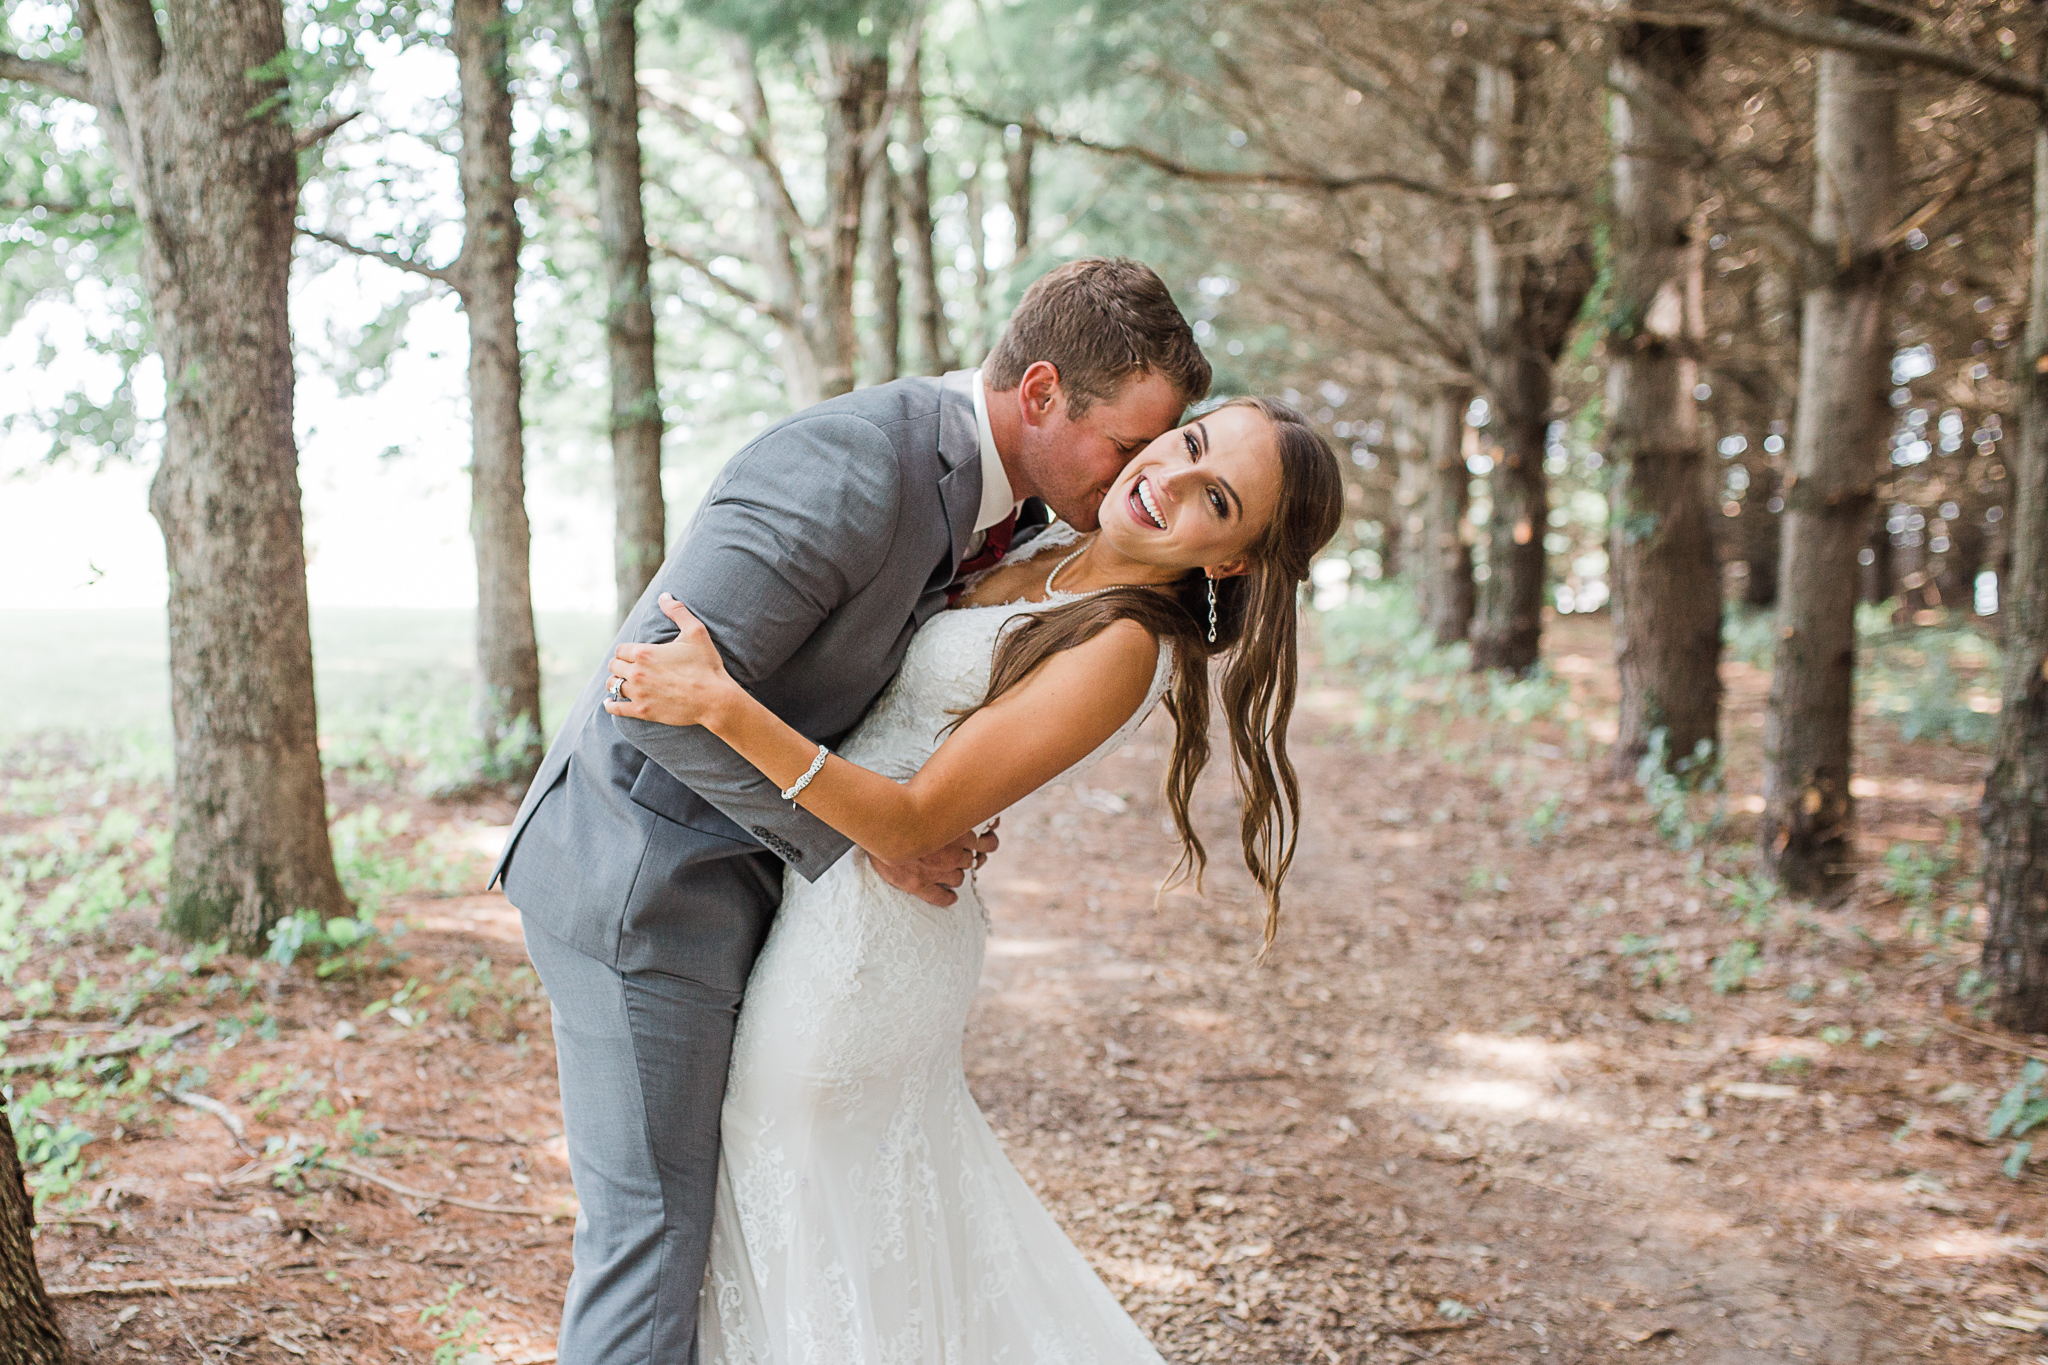 Groom leaning in and kissing bride in the forest